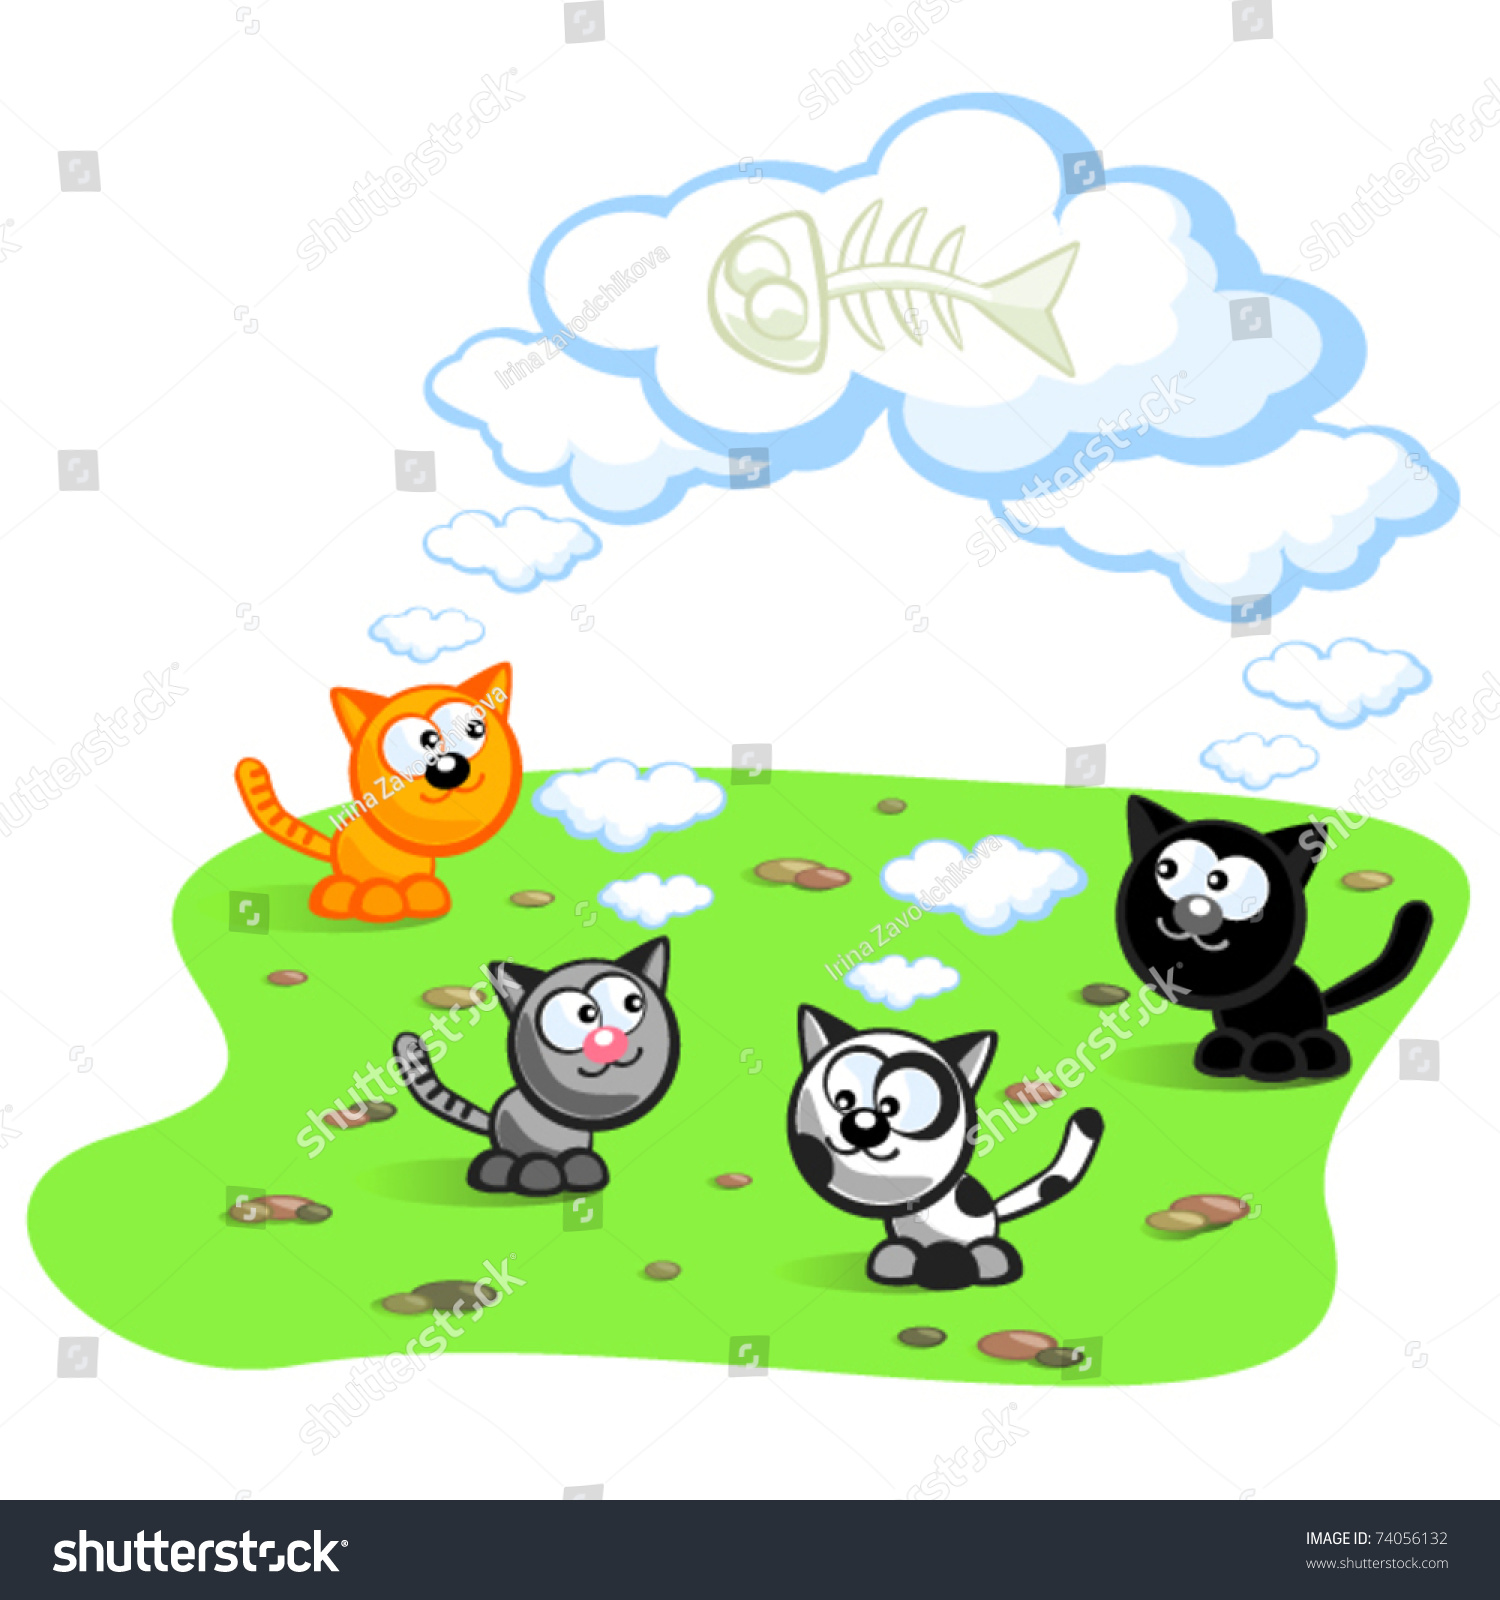 Four cats dream about eating fish stock vector 74056132 for Dreaming of eating fish